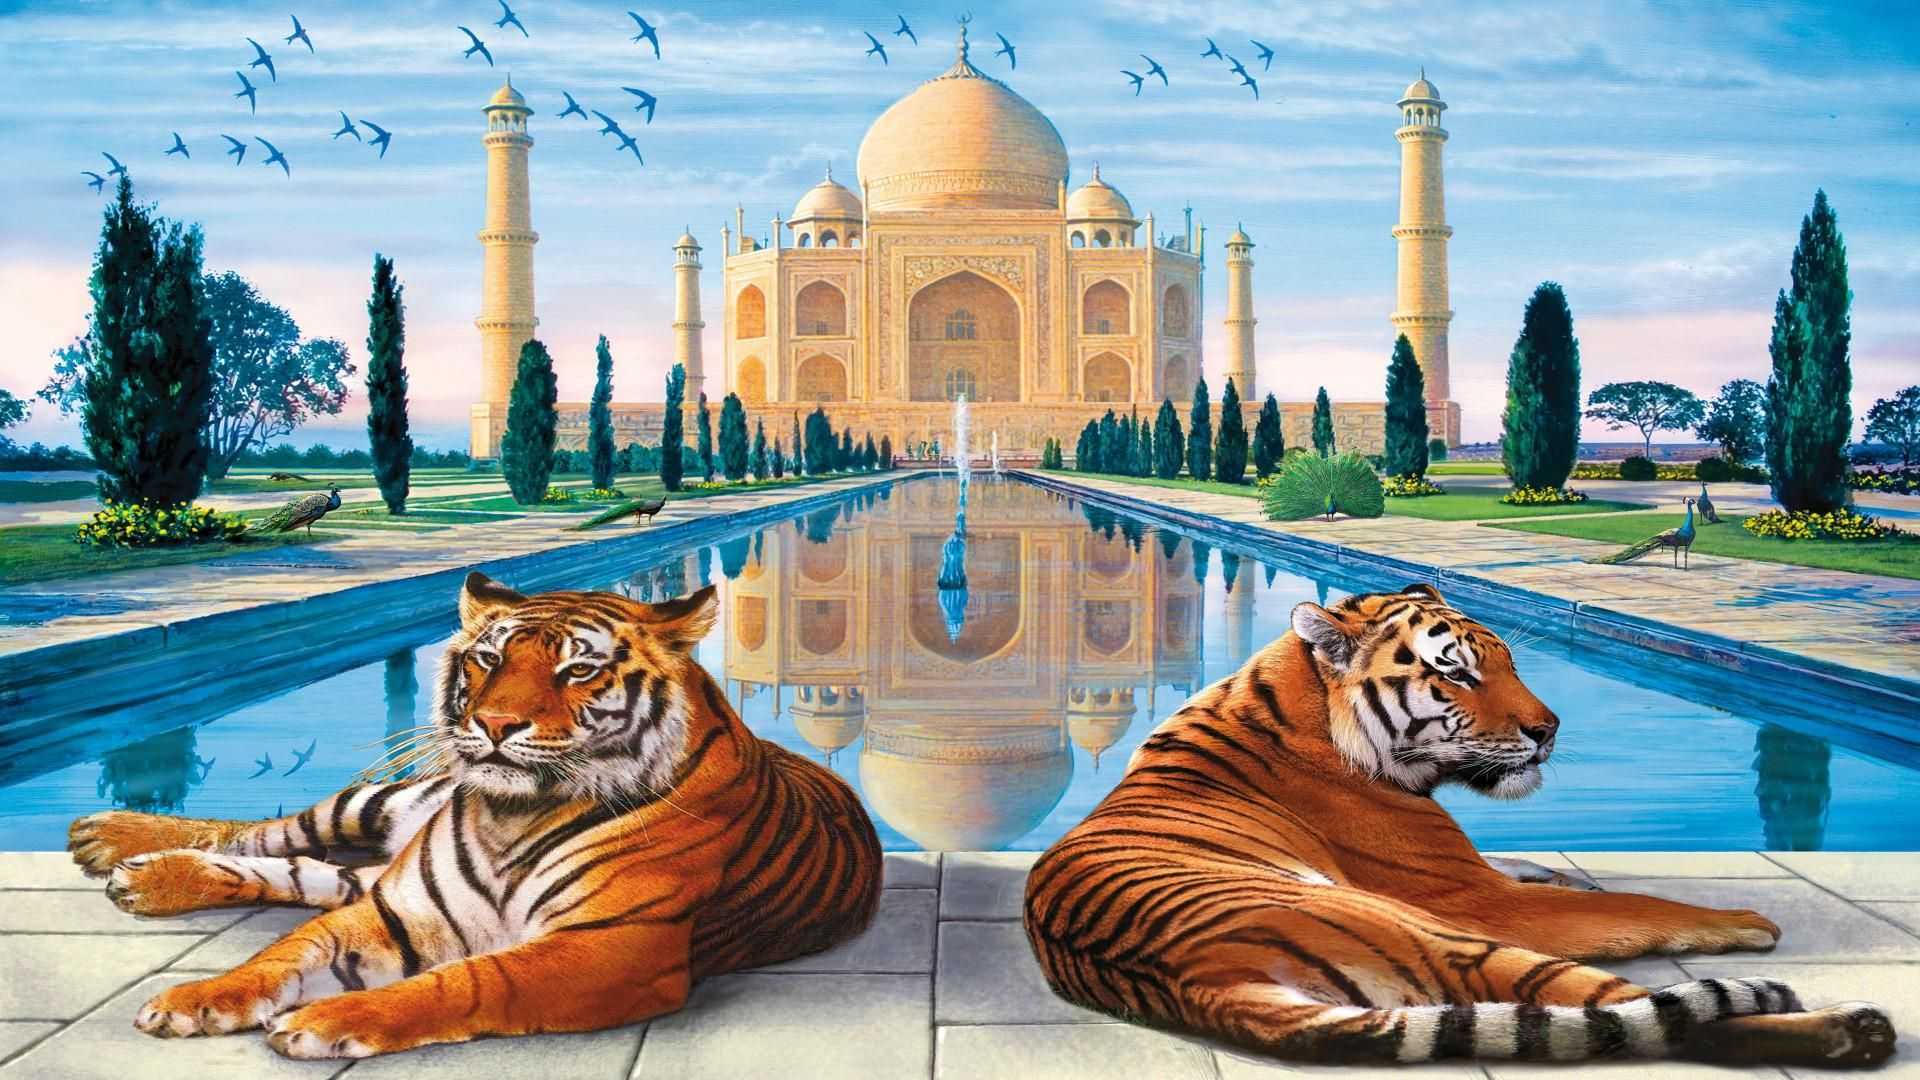 Hd wallpaper taj mahal - Undefined Taj Mahal Hd Wallpaper 53 Wallpapers Adorable Wallpapers